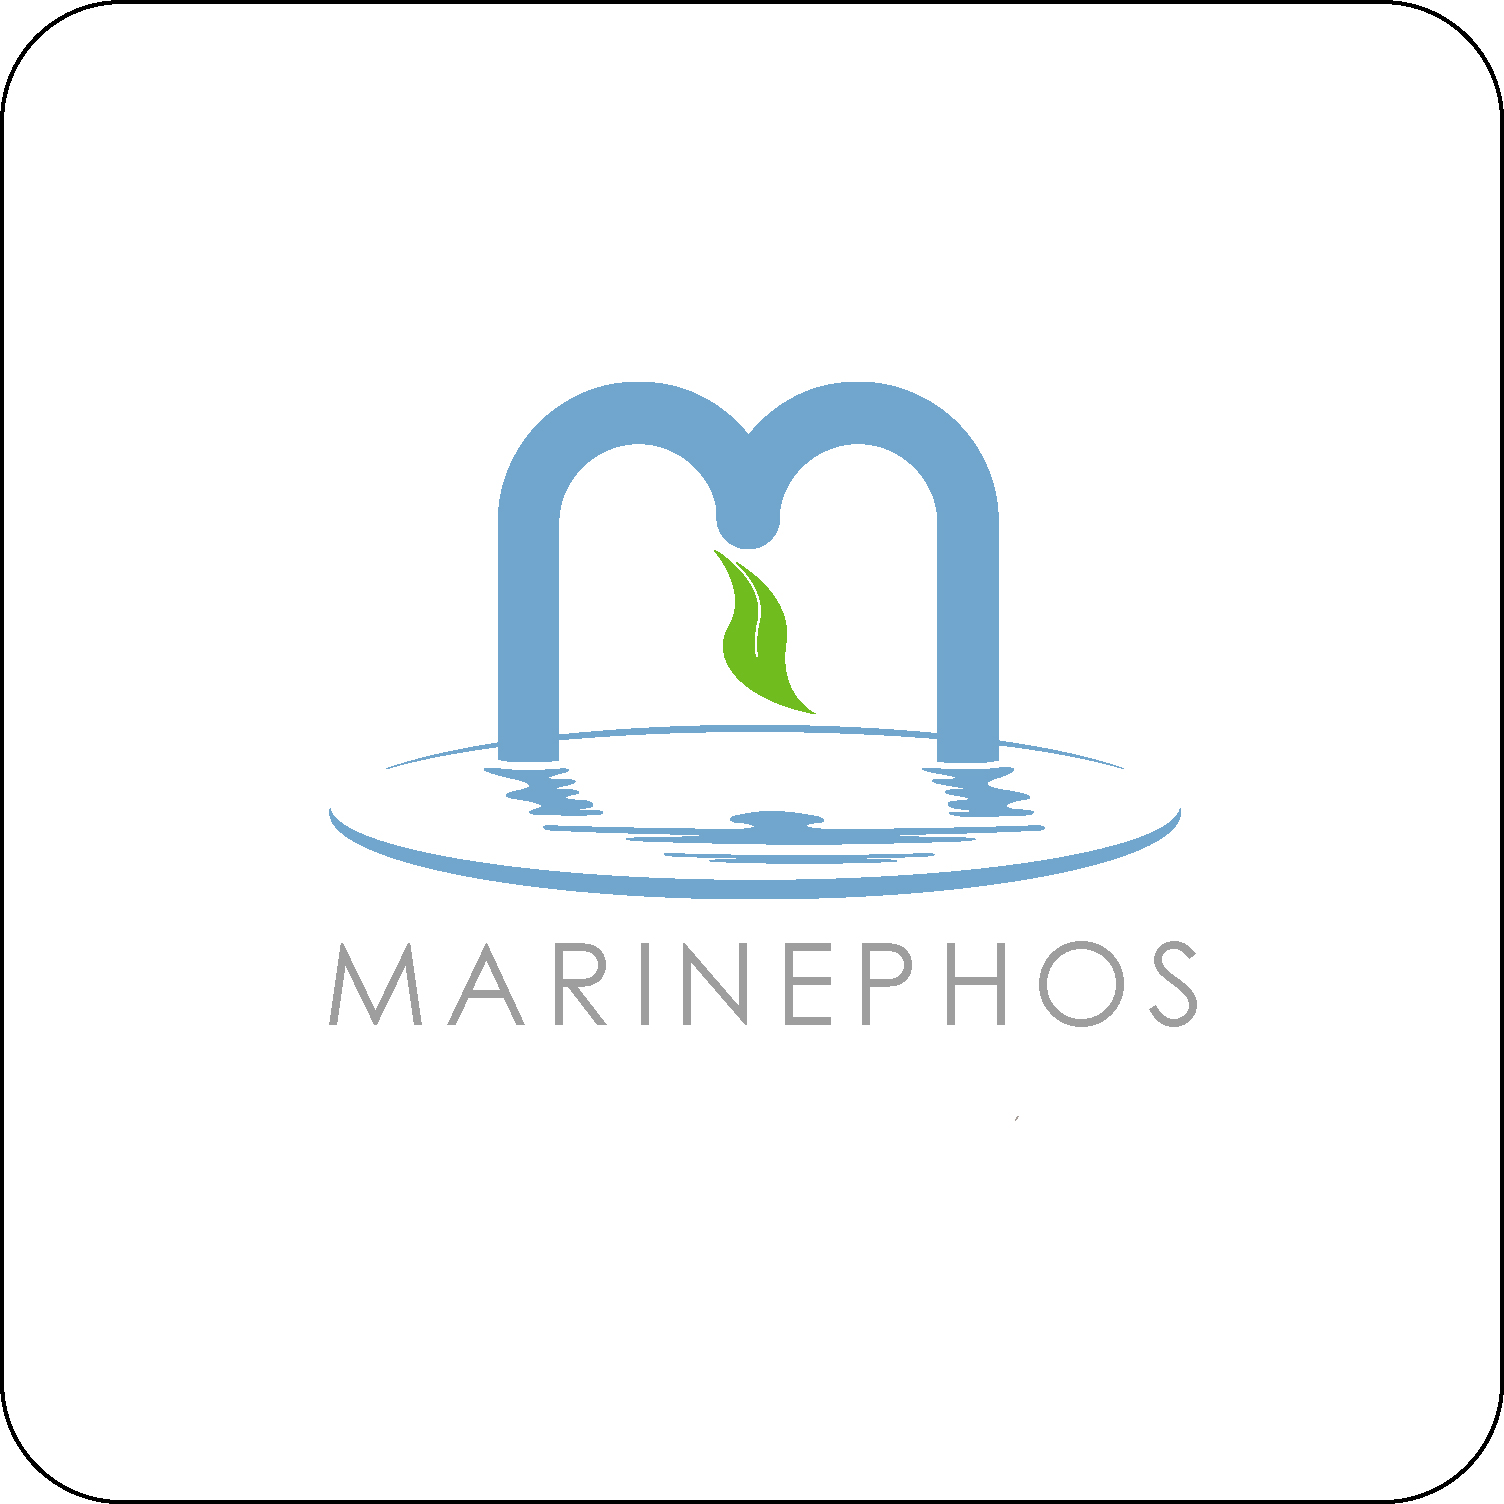 Logo Design by Jace Design for Marinephos - Design #7228